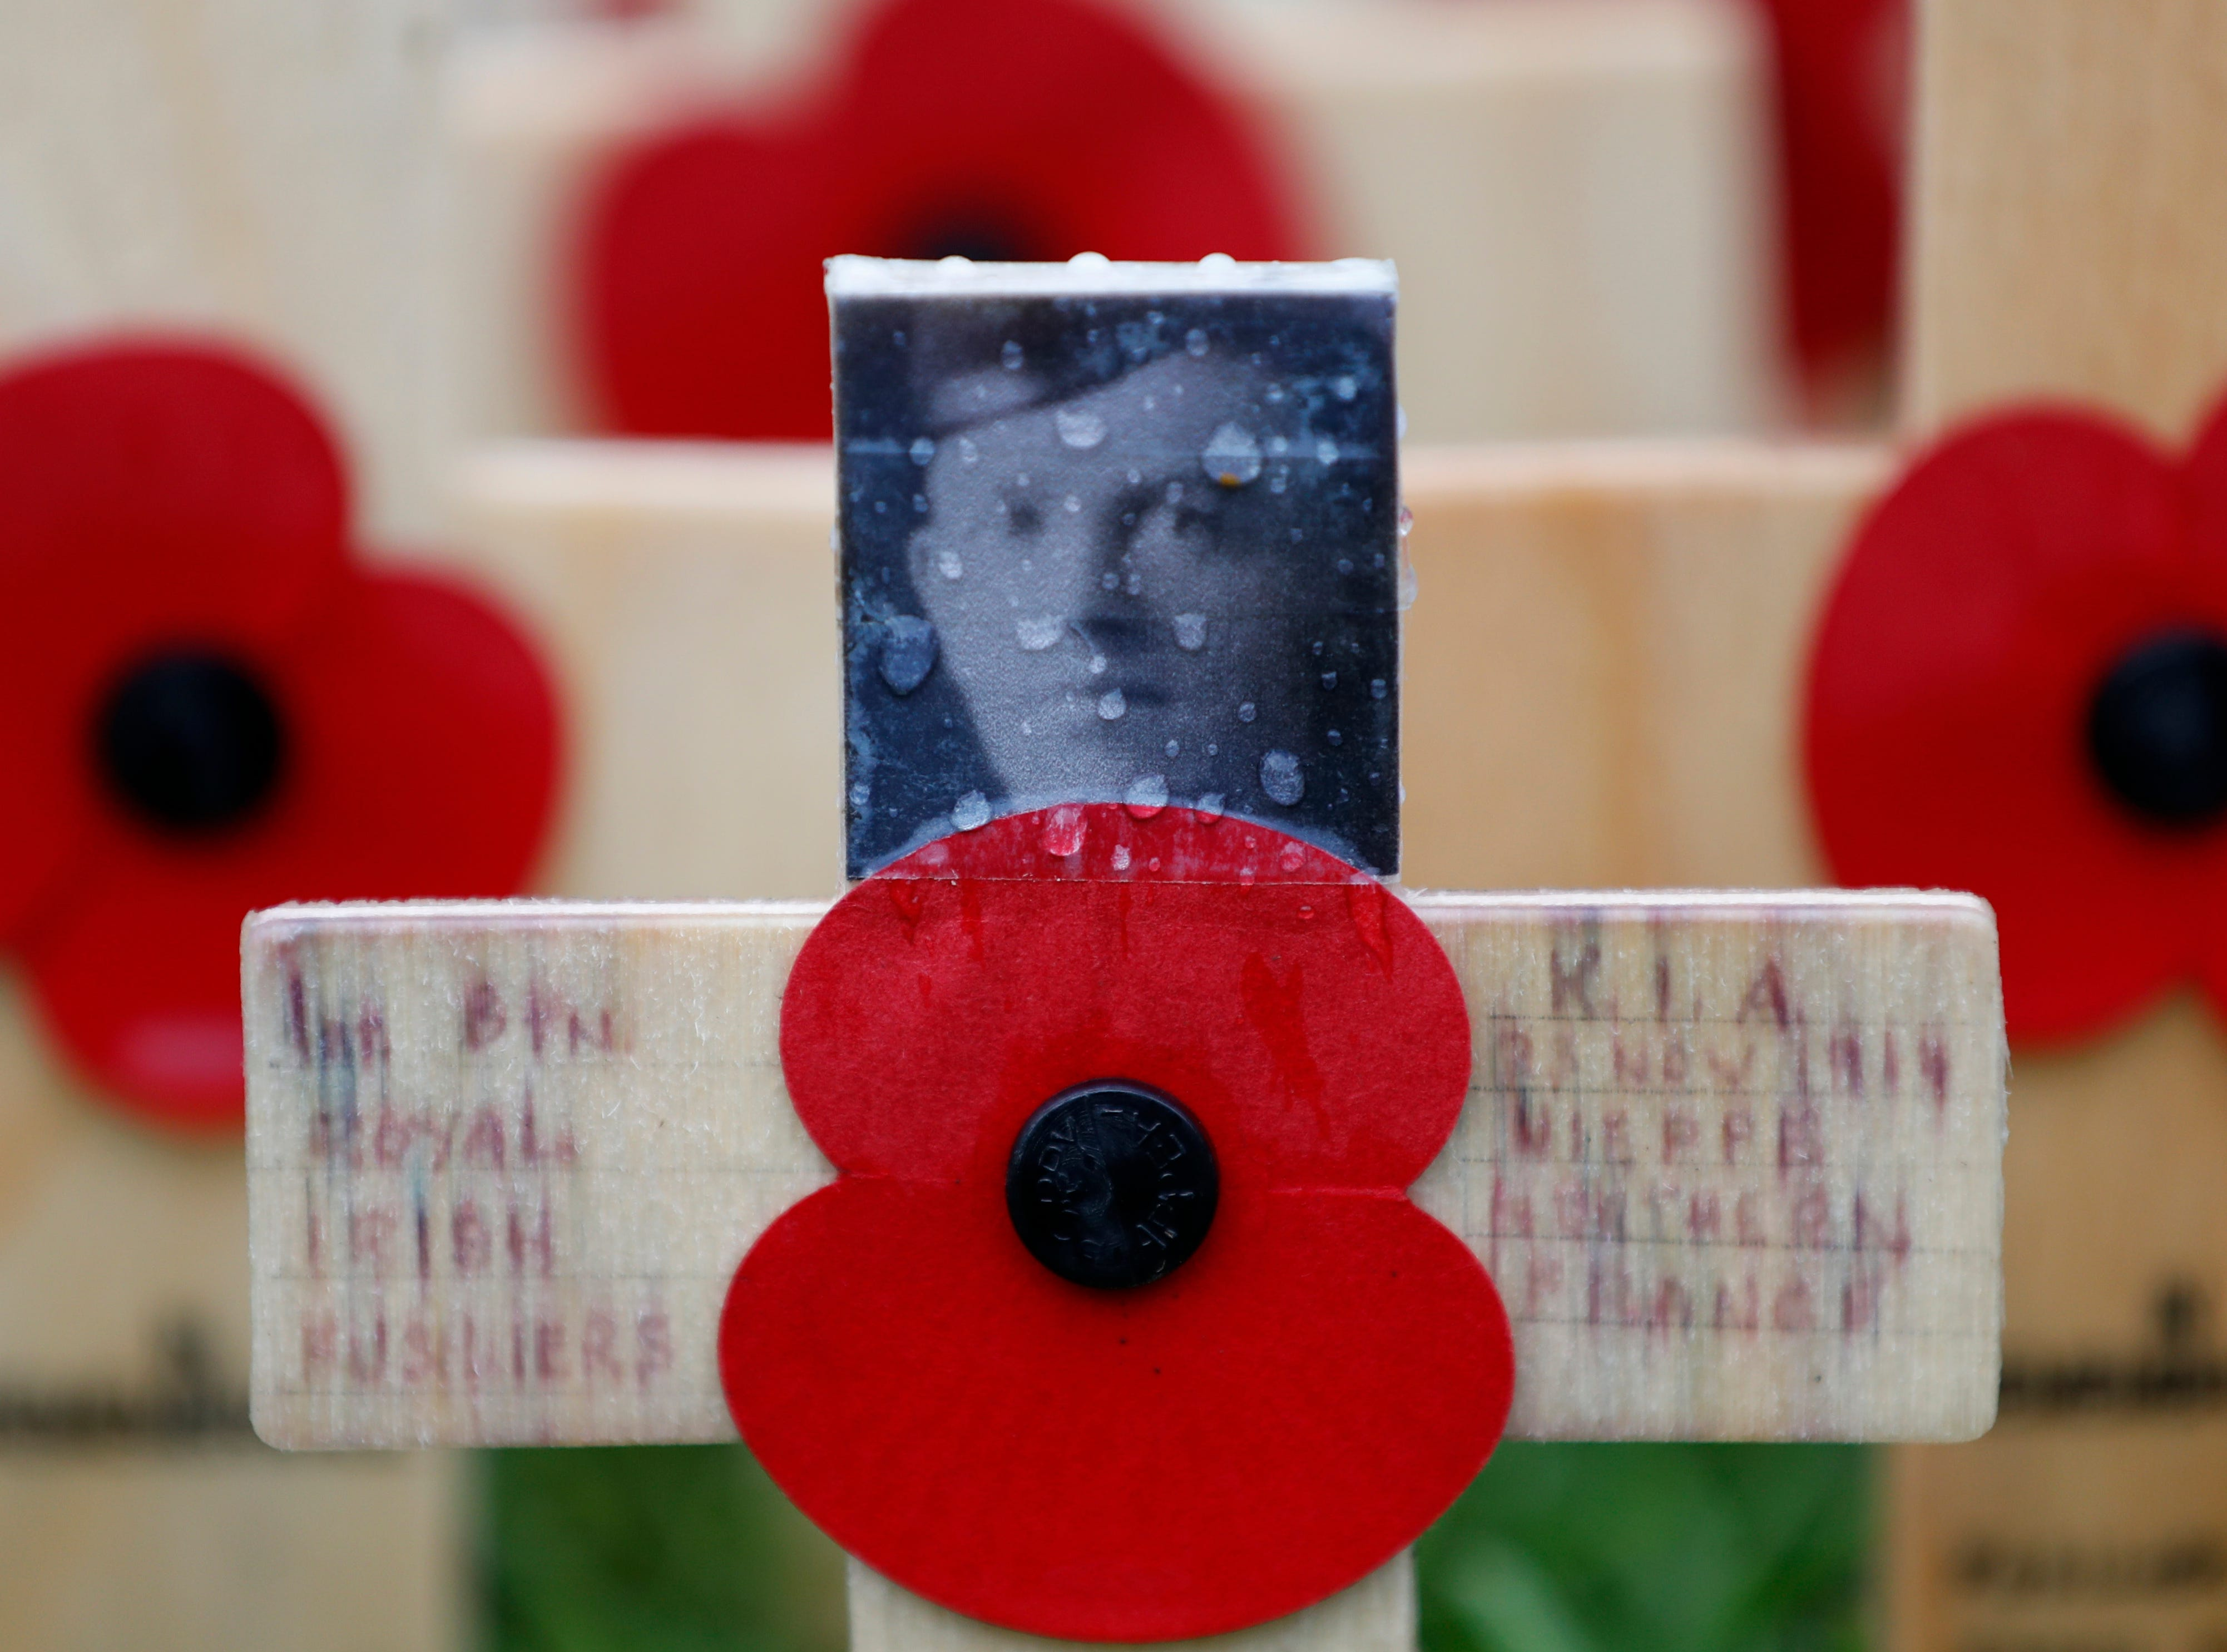 A rain drop covers a photograph of Gerald Briedell of the Royal Irish Regiment, which adorns a cross placed in the Field of Remembrance at Westminster Abbey in preparation for the annual Armistice Day on Nov. 11, in London, Wednesday, Nov. 7, 2018.